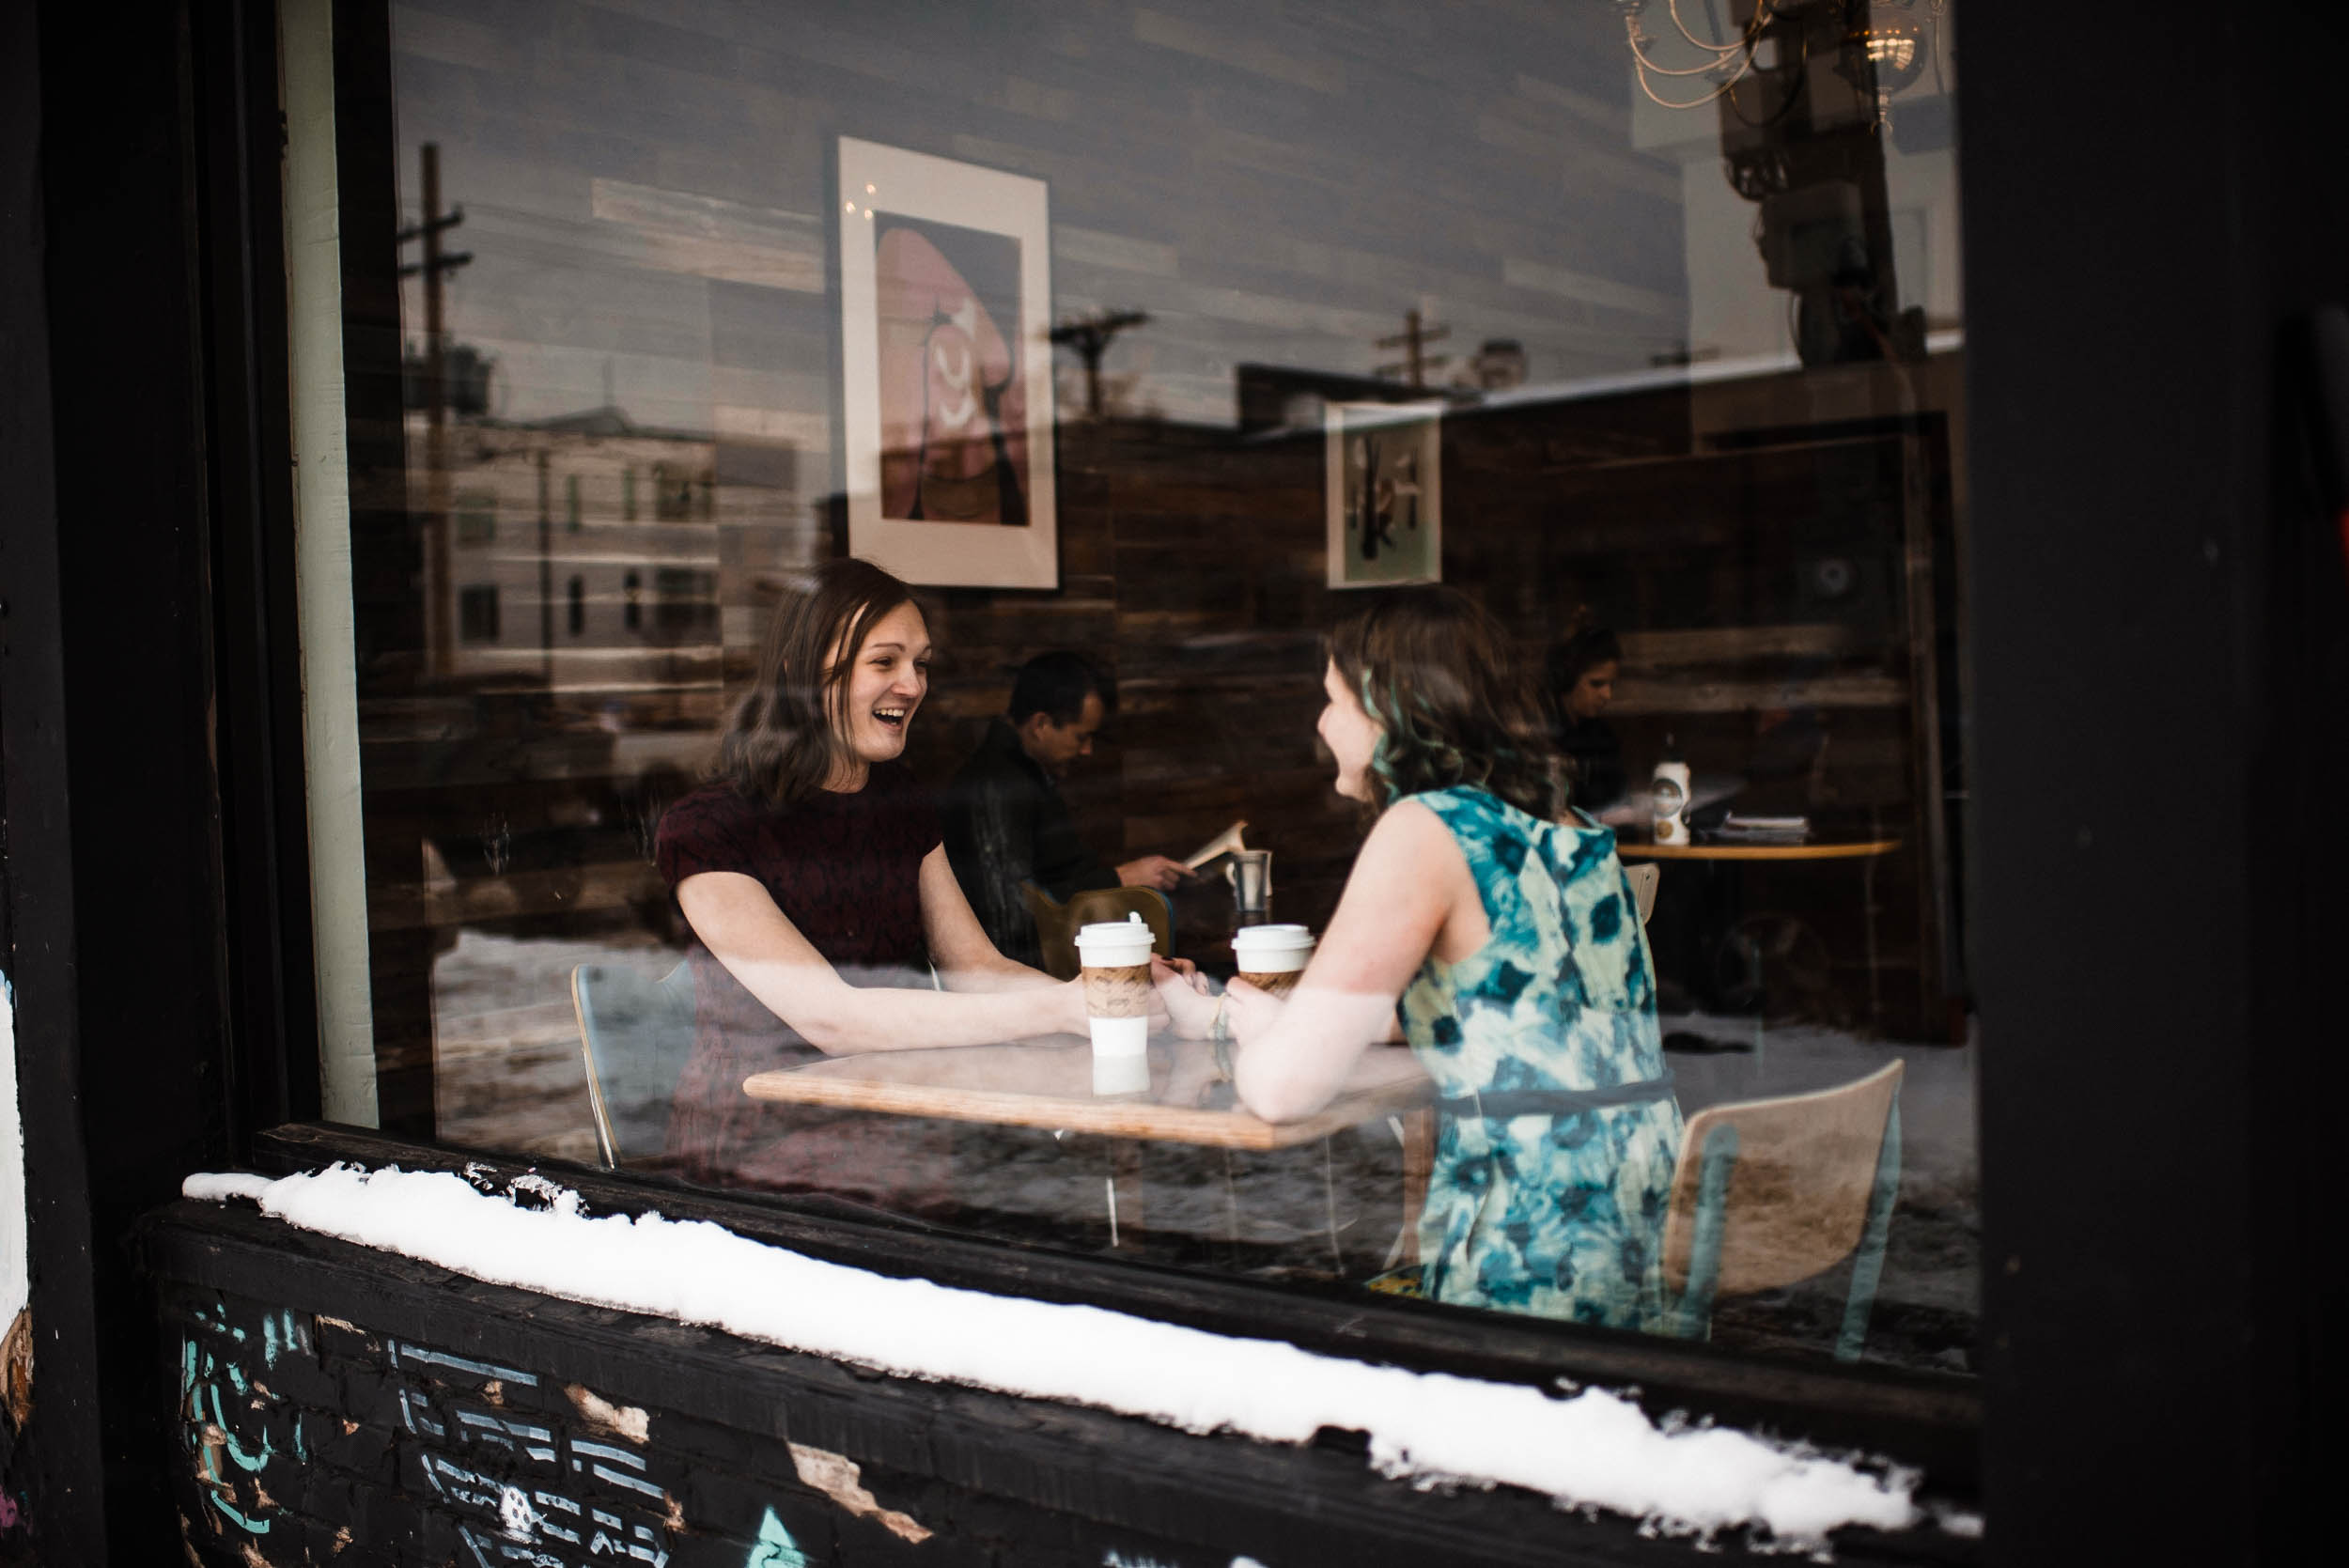 Sharing a cup of coffee at Creama Coffee in Denver Colorado RiNo art mural, RiNo Arts District, RiNo engagement session, LGBT wedding photographers, LGBT friendly wedding photographers, LGBT engagement photographers, Denver wedding photographers, Denver Engagement photographers